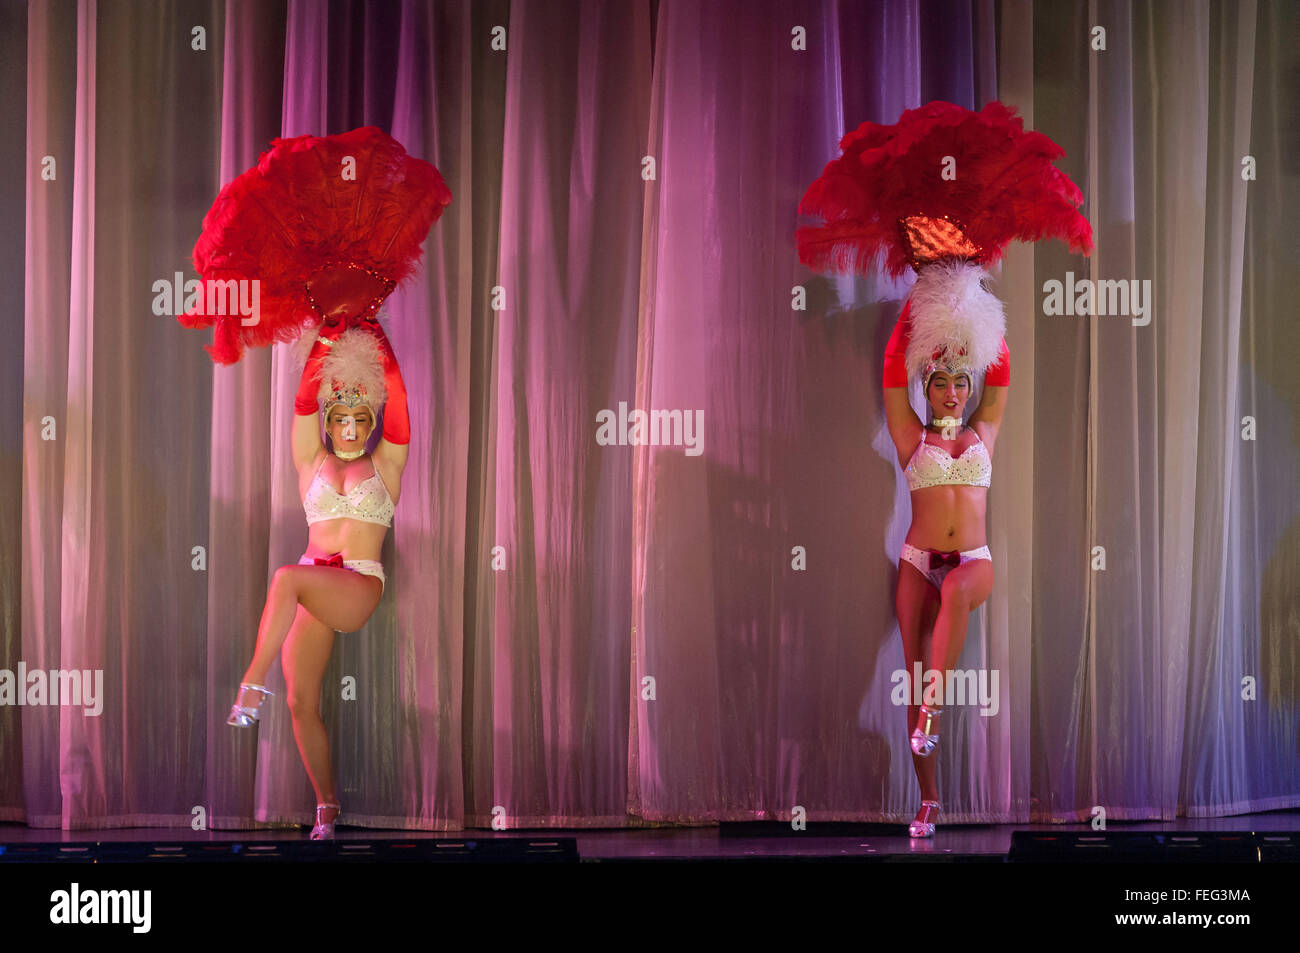 Showtime in Pacifica Theatre, Royal Caribbean's Brilliance of the Seas cruise ship, North Sea, Europe - Stock Image